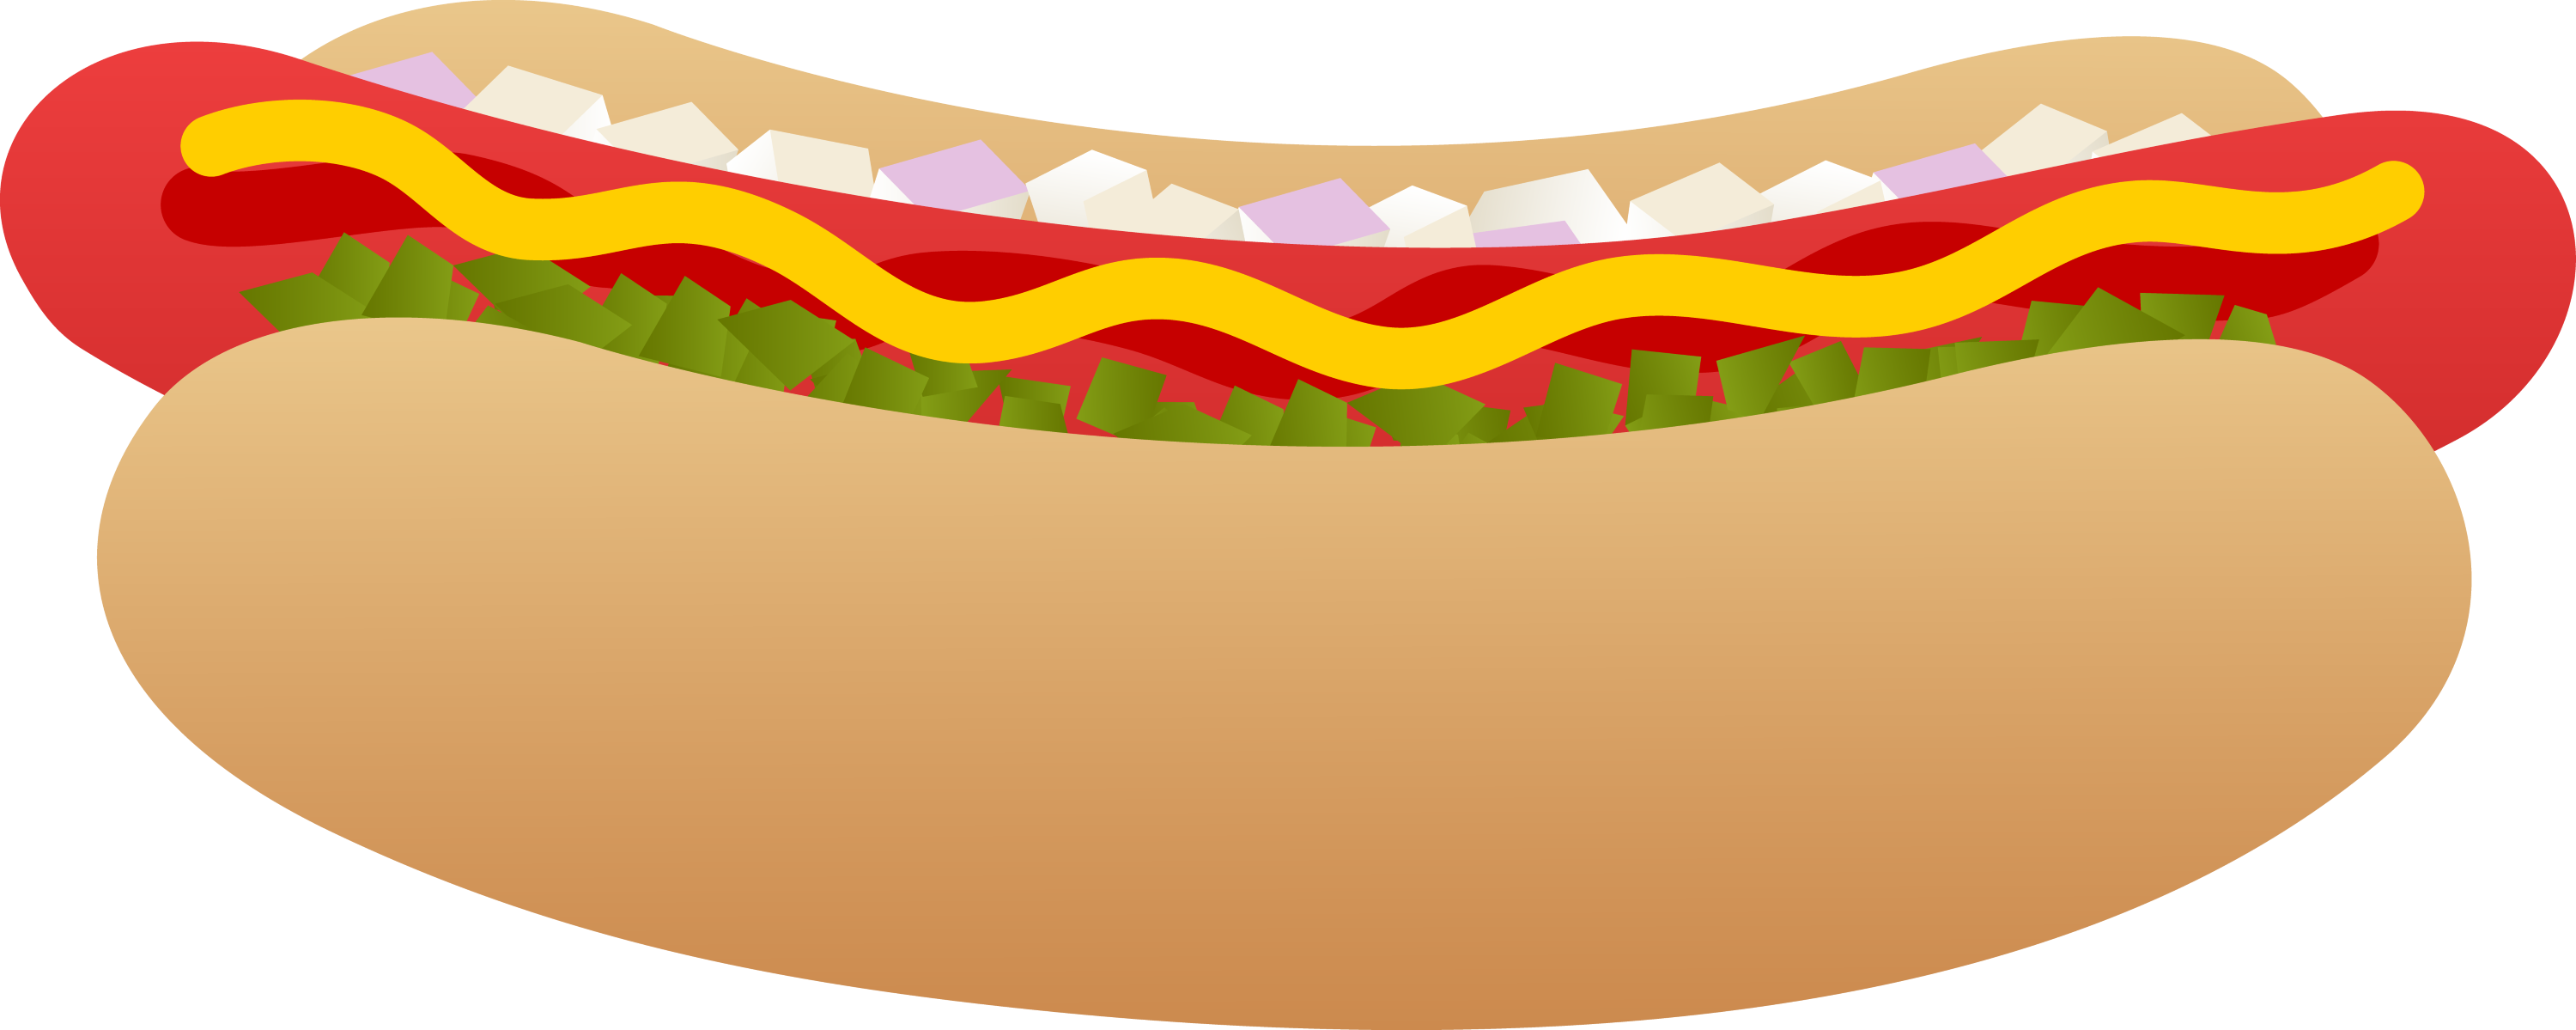 Hot Dog on a Bun - Free Clip Art